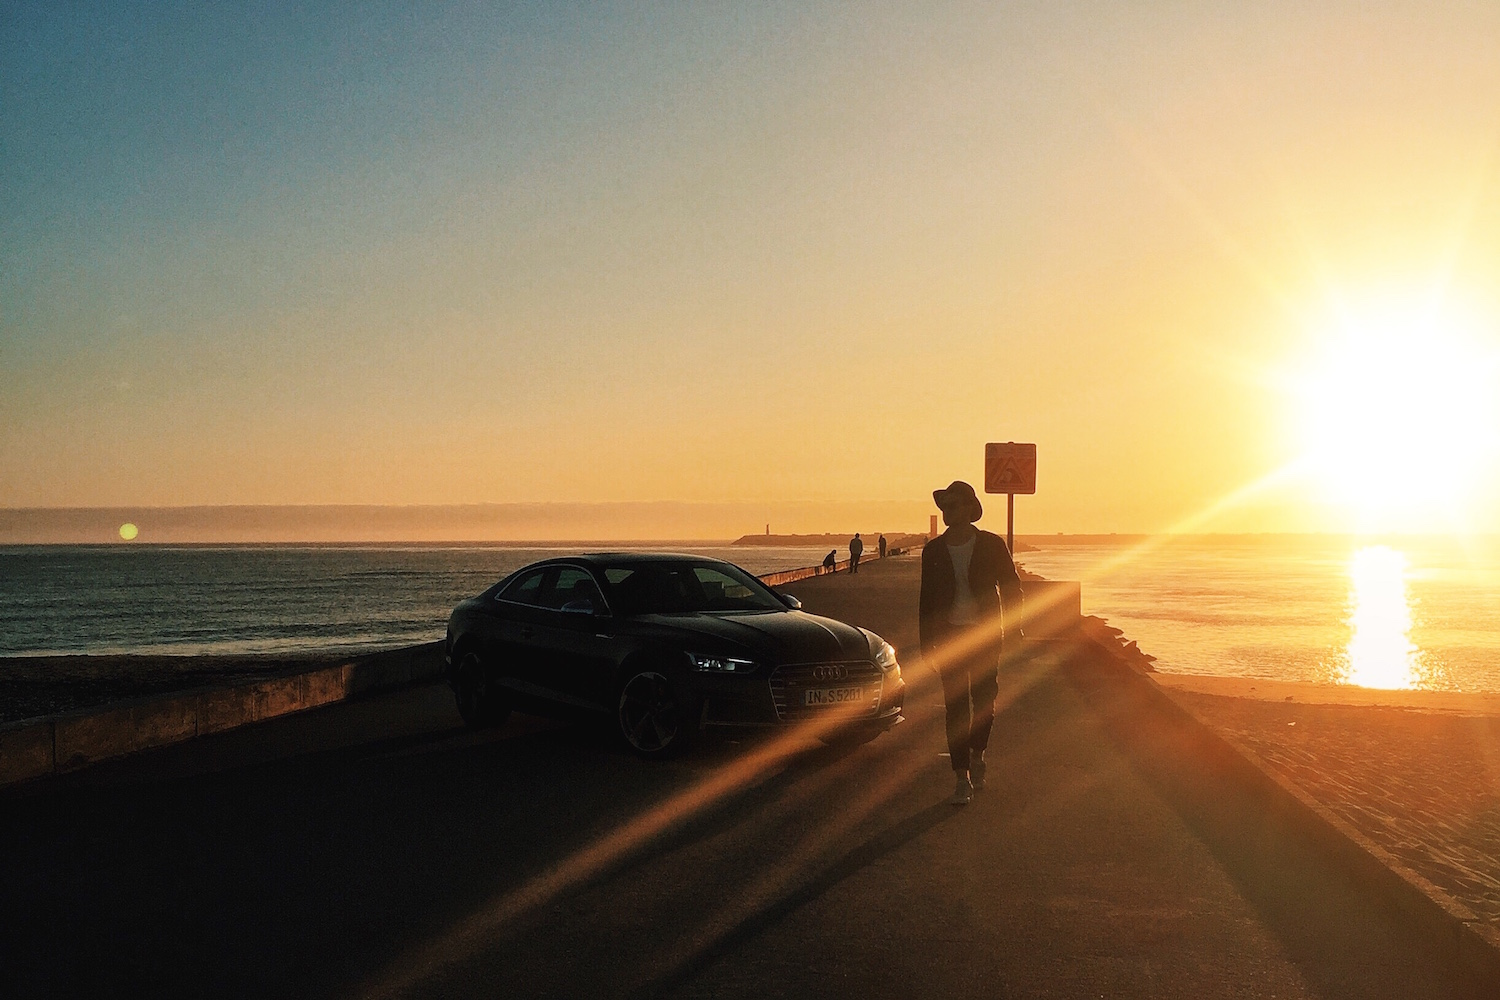 Travel Diary_A Long Weekend In Porto_by Meanwhile in Awesometown_Mens Fashion and Lifestyle Blog from Austria_Audi A5 in the sunset at a Pier in Aveiro